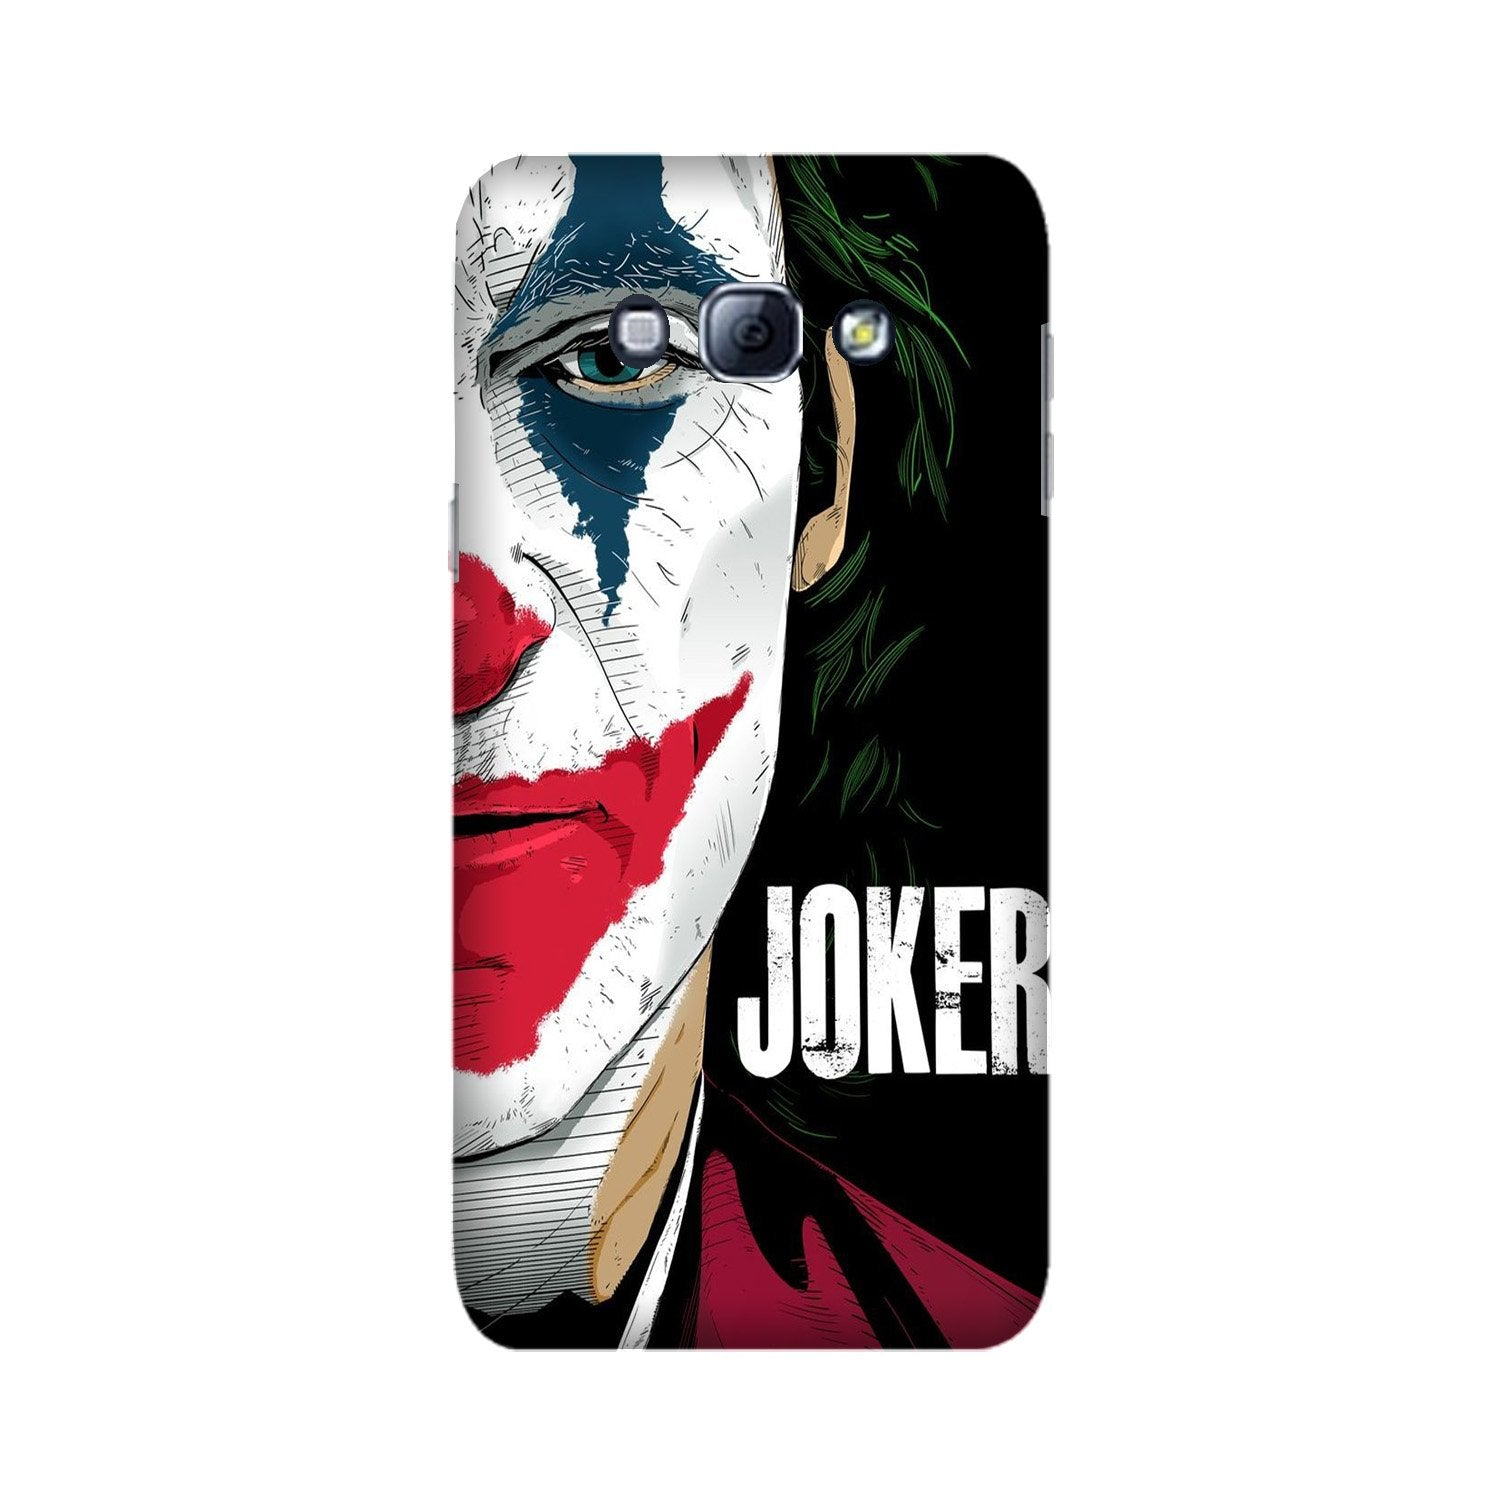 Joker Mobile Back Case for Galaxy A8 (2015)  (Design - 301)